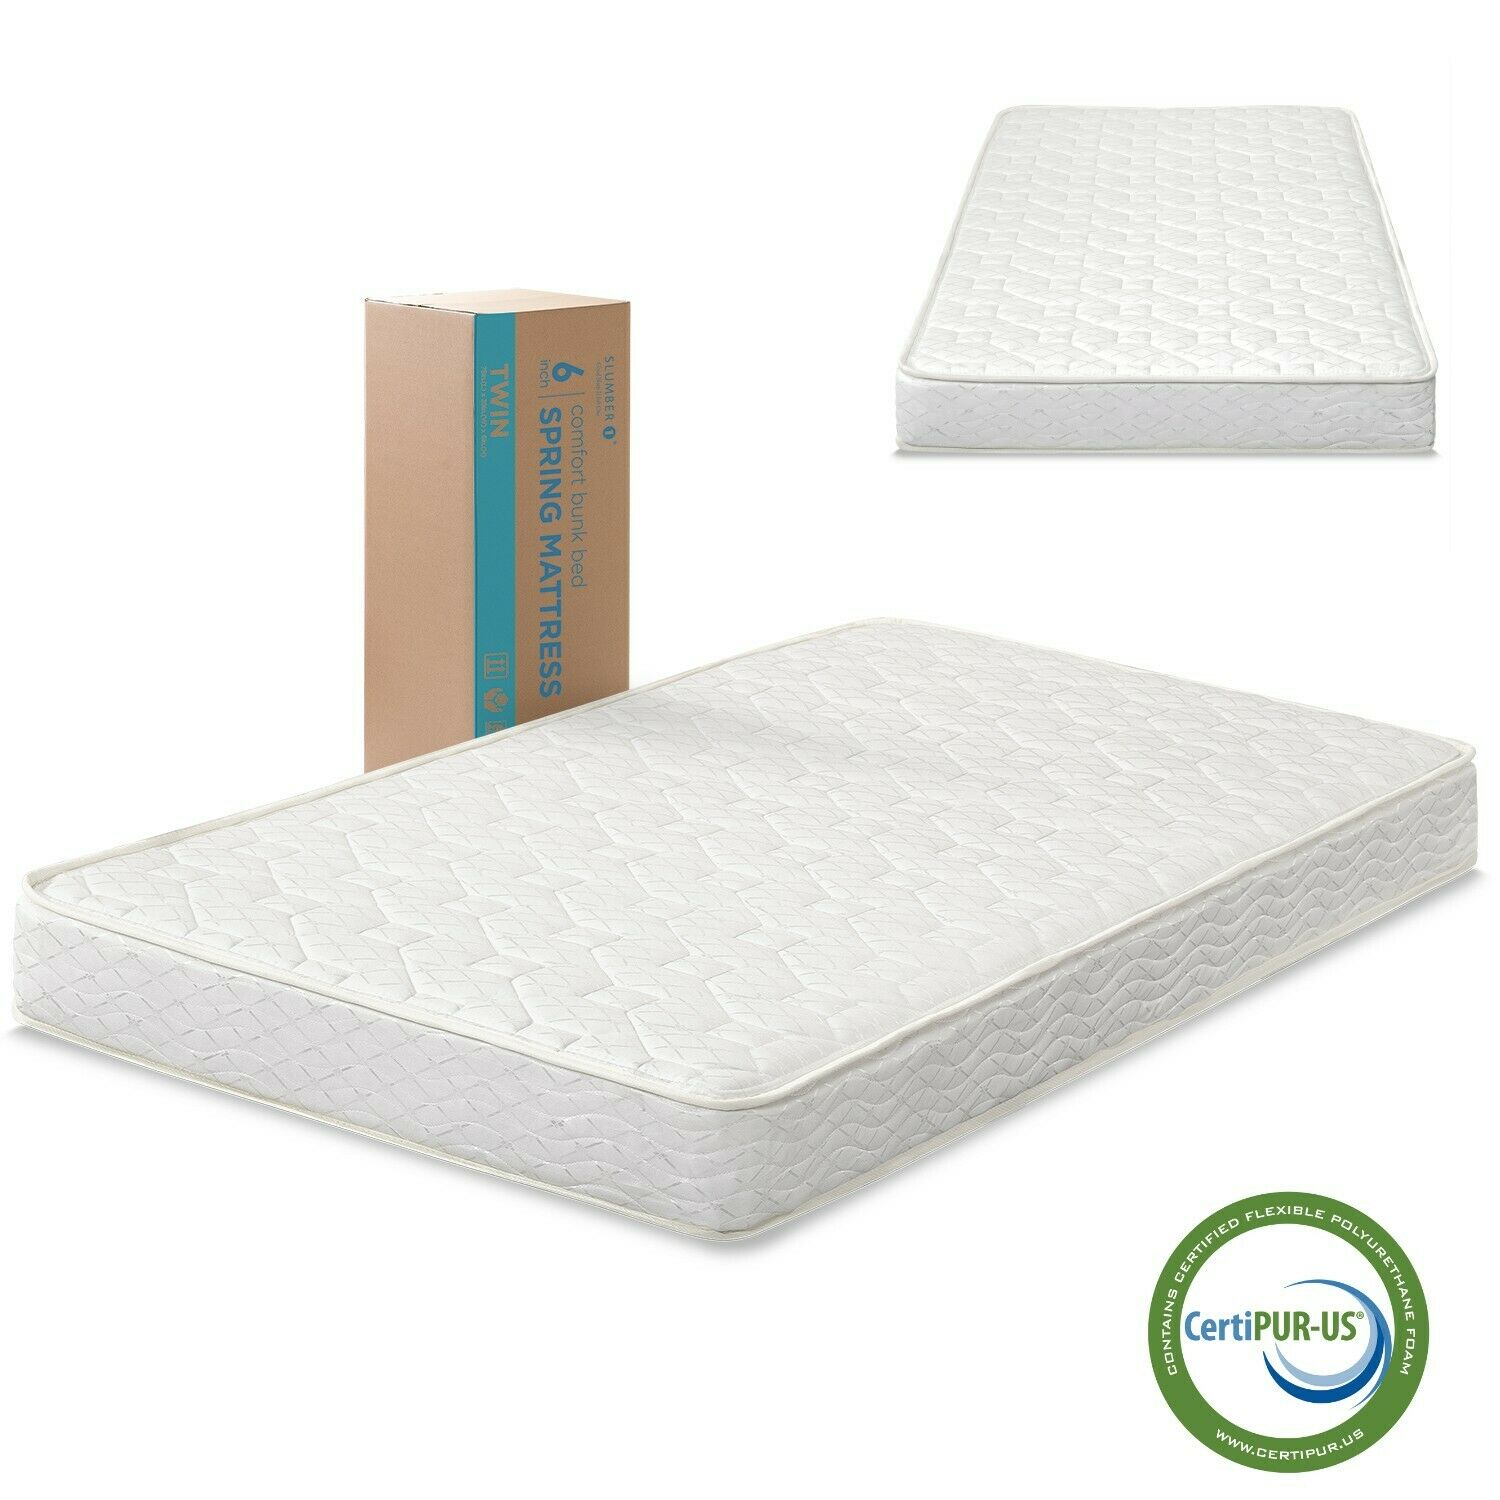 Firm Innerspring Mattress Full Twin Size Comfort for Bunk Be